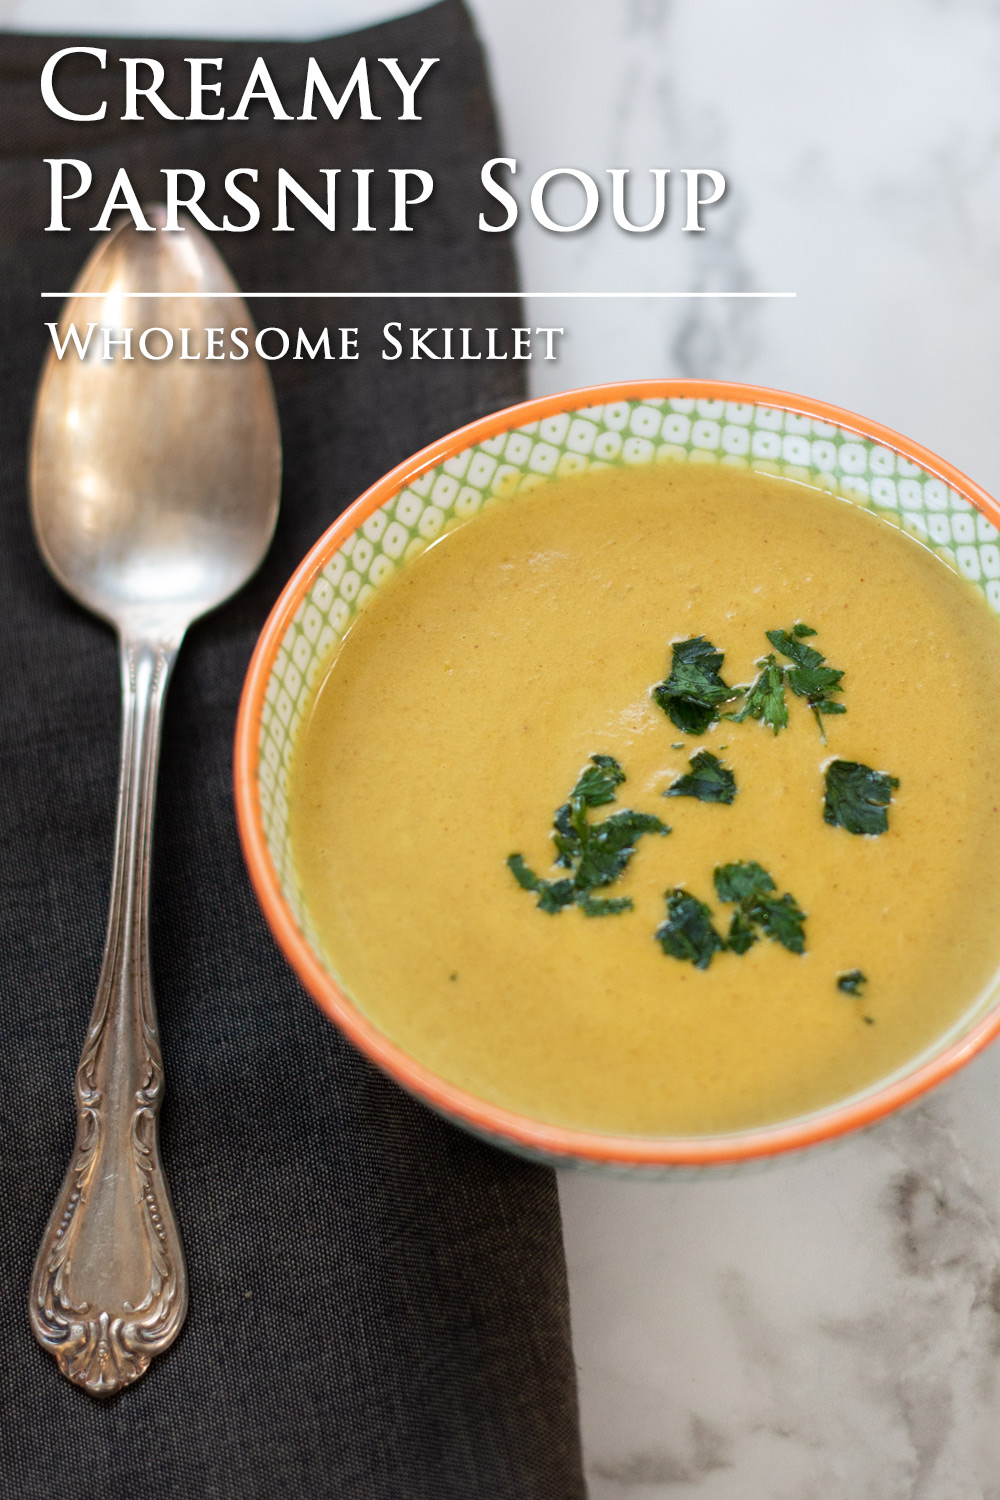 Creamy Parsnip Soup is a wonderful way to enjoy this much-overlooked root vegetable.